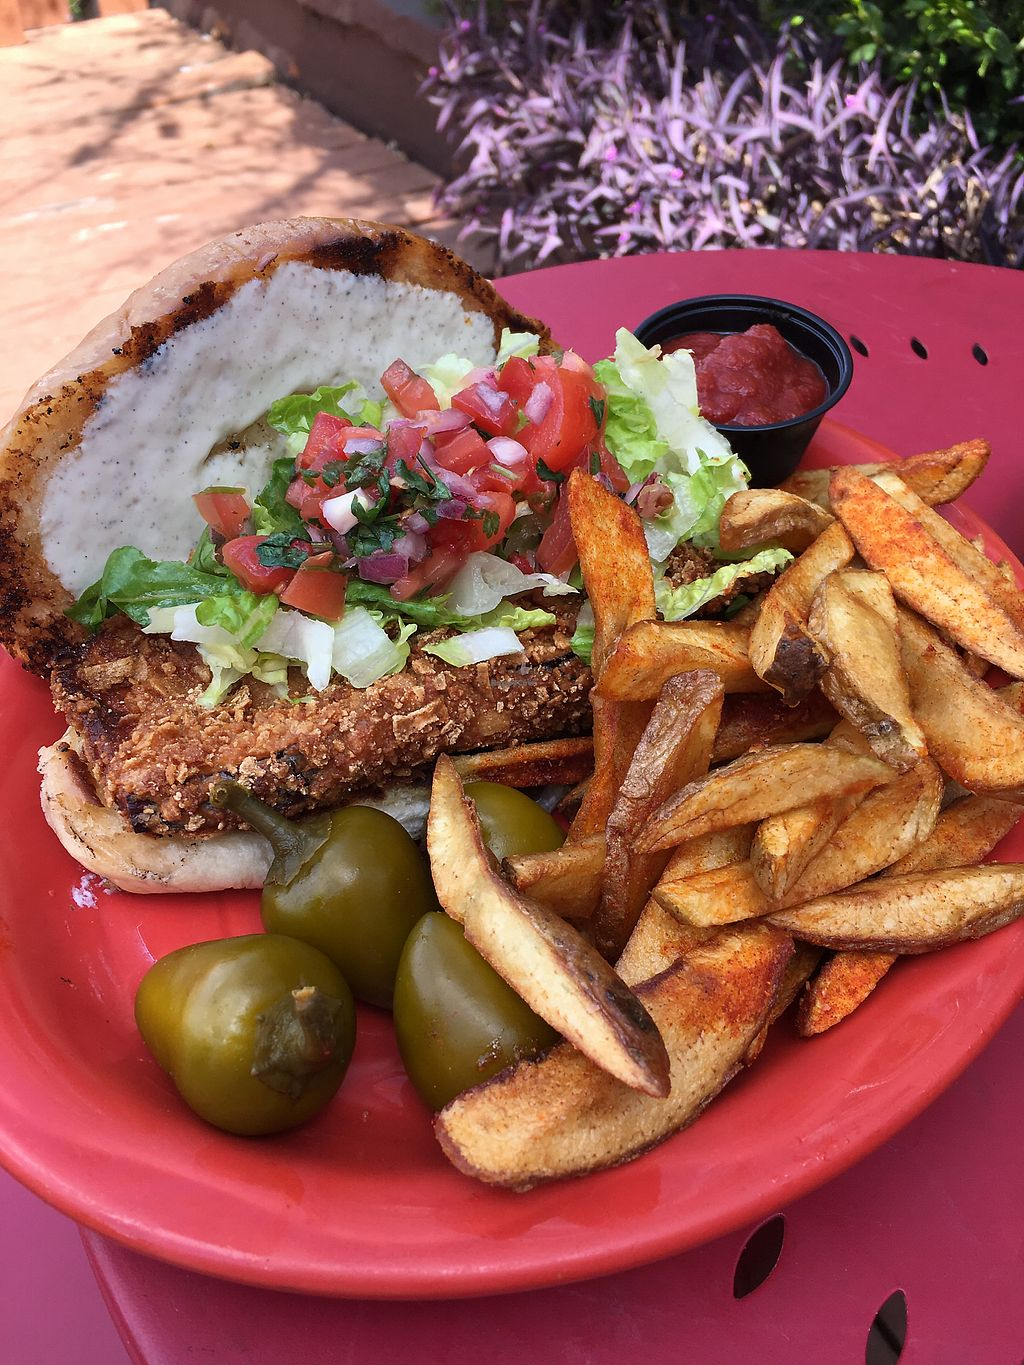 """Photo of Senor Veggie  by <a href=""""/members/profile/giant%20bunnie"""">giant bunnie</a> <br/>Delicious fried eggplant sandwich  <br/> March 23, 2018  - <a href='/contact/abuse/image/37190/374998'>Report</a>"""